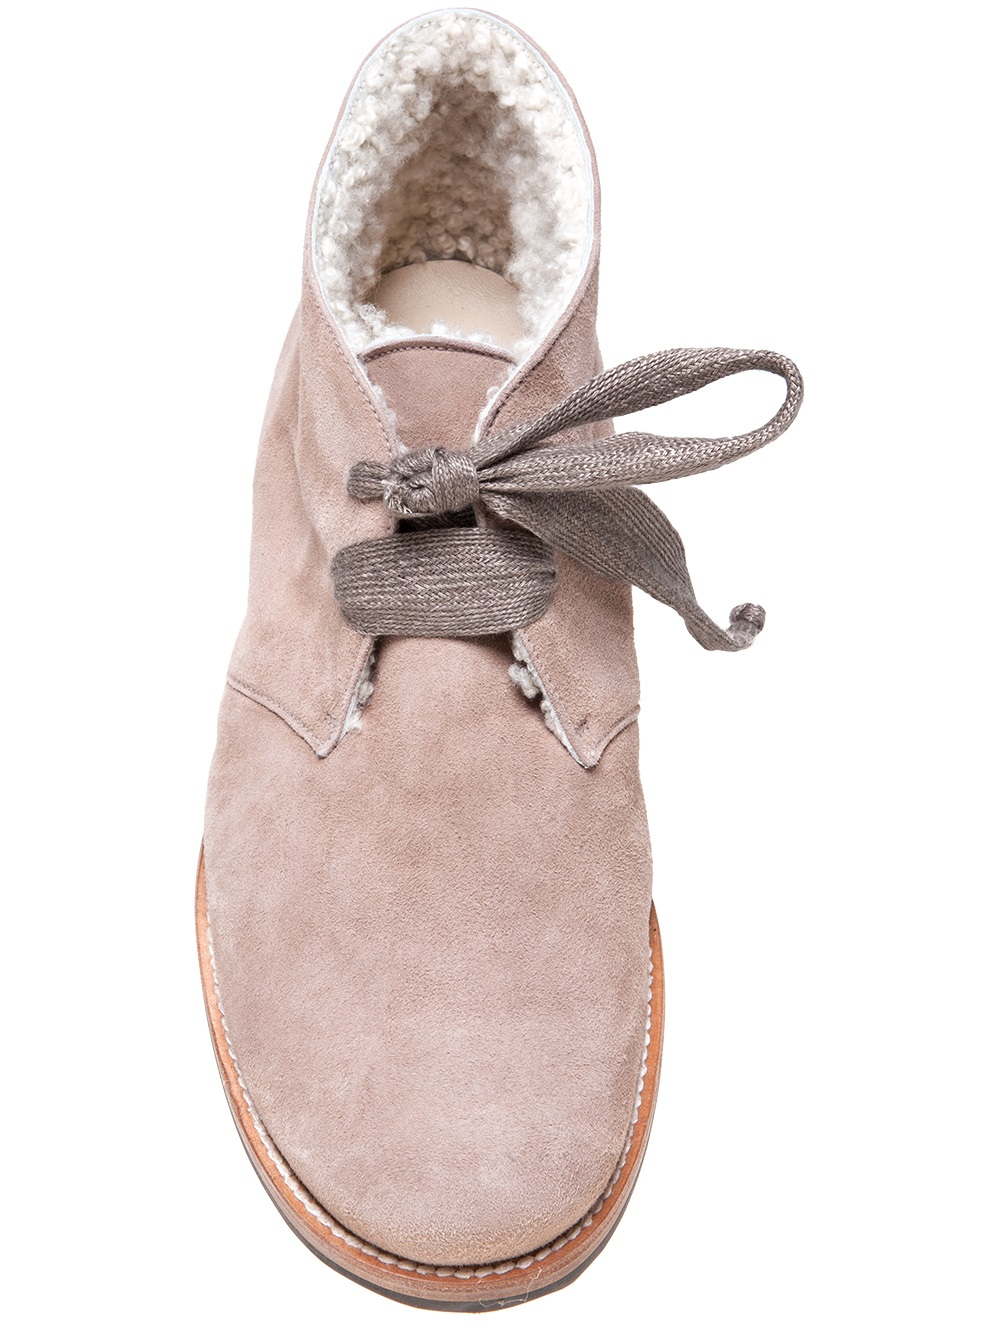 Henry Cuir Desert Bootie in Natural